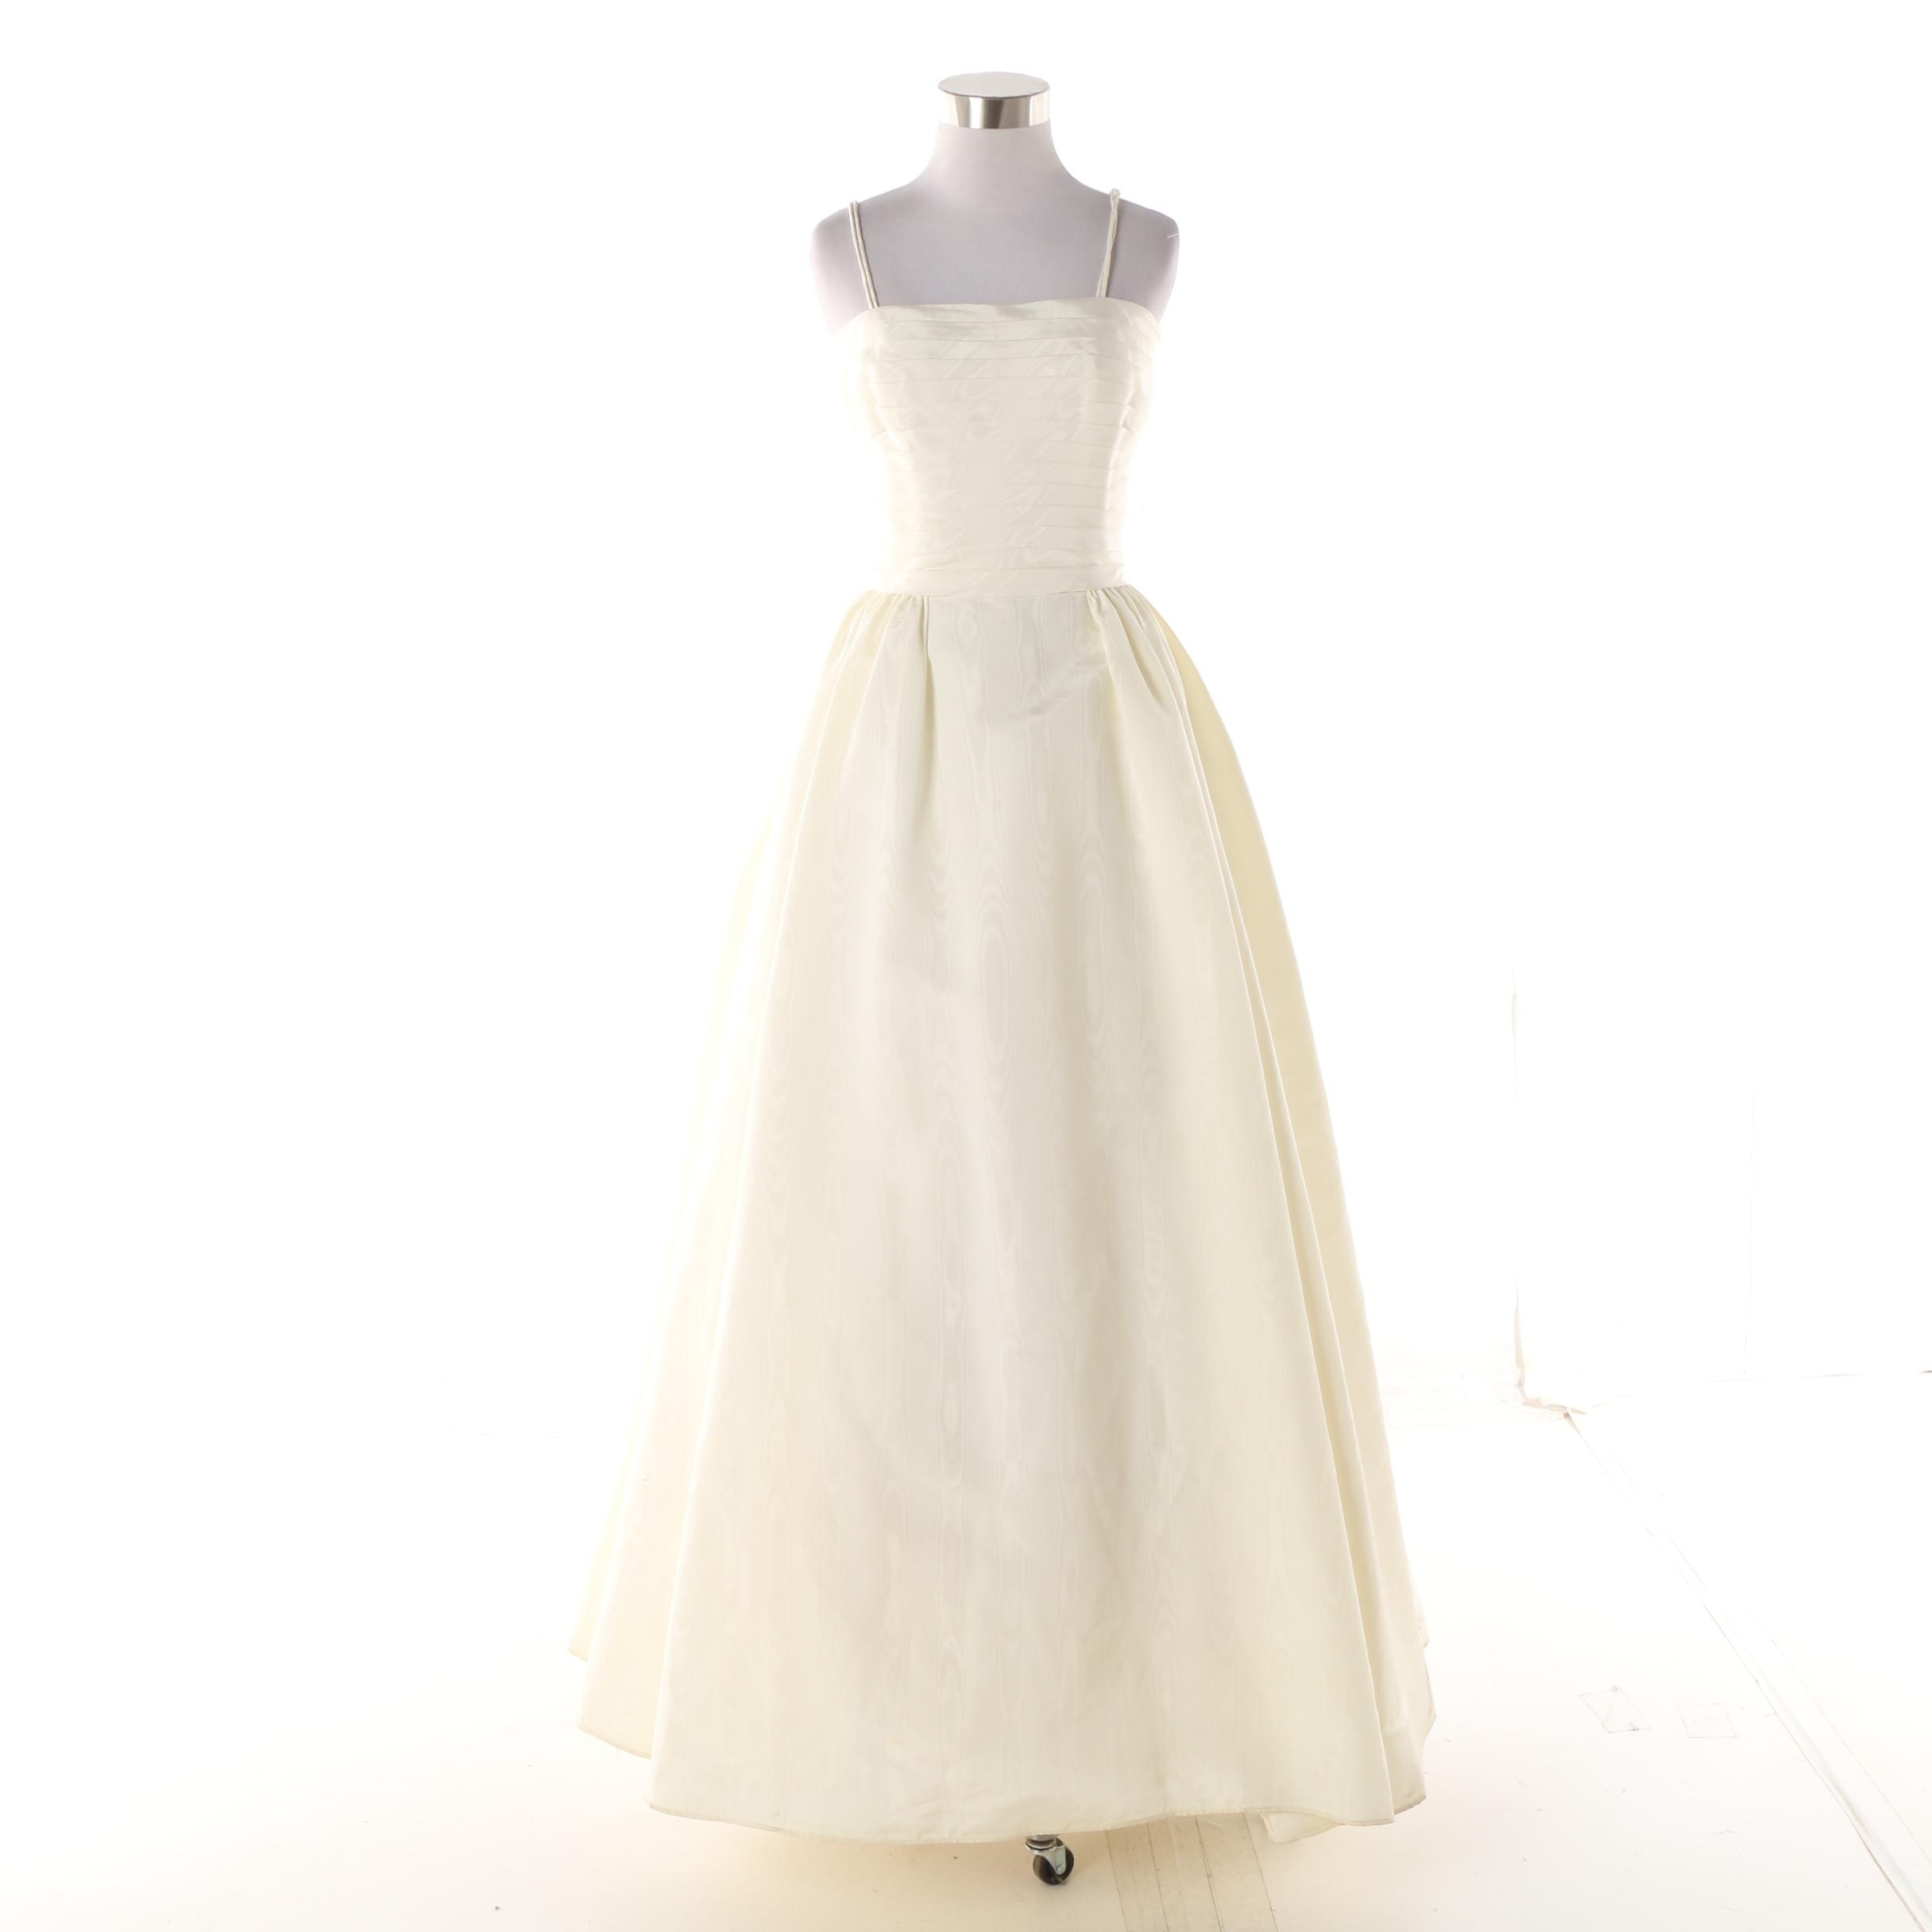 Vintage Ivory-Colored Moiré Fabric Occasion Gown with Taffeta Underskirt